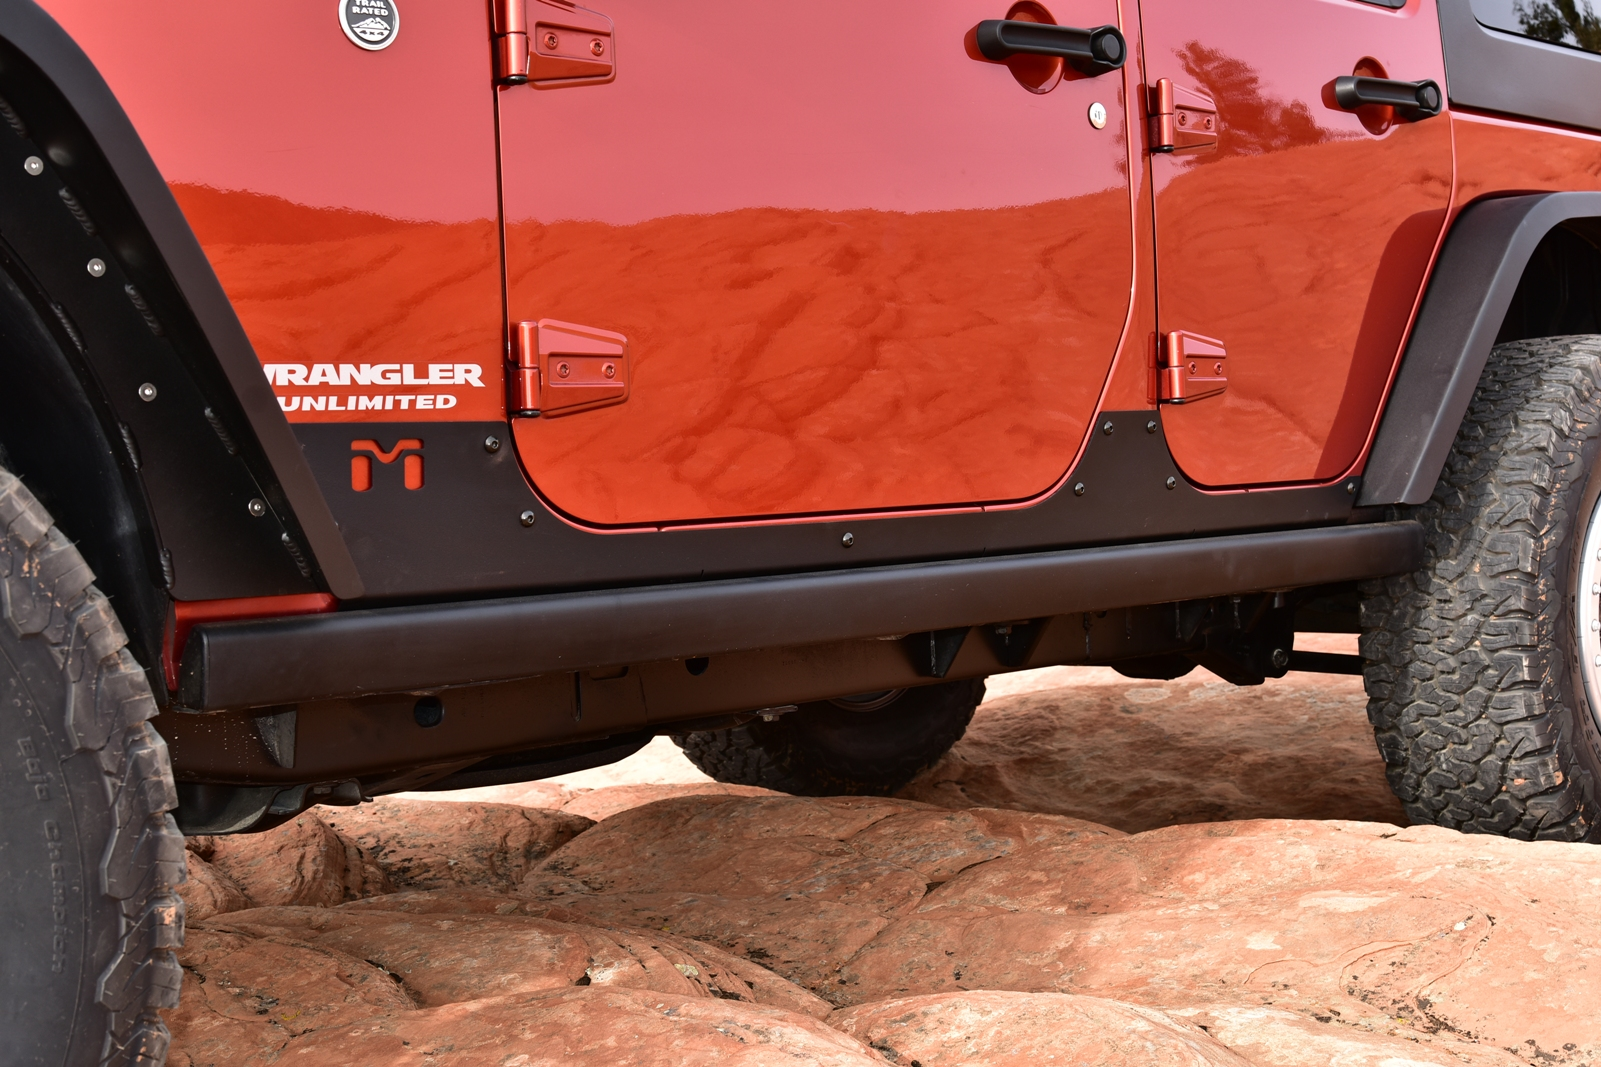 Dd Explorer Daily Driver And Backcountry All In One Hi Lift Jack Mount On Jeep Wrangler Metalcloak Jk Unlimited Rocker Exoskins Are Made Of Aluminum Provide Strength Reinforcement To Vulnerable Thin Panel Sheet Metal